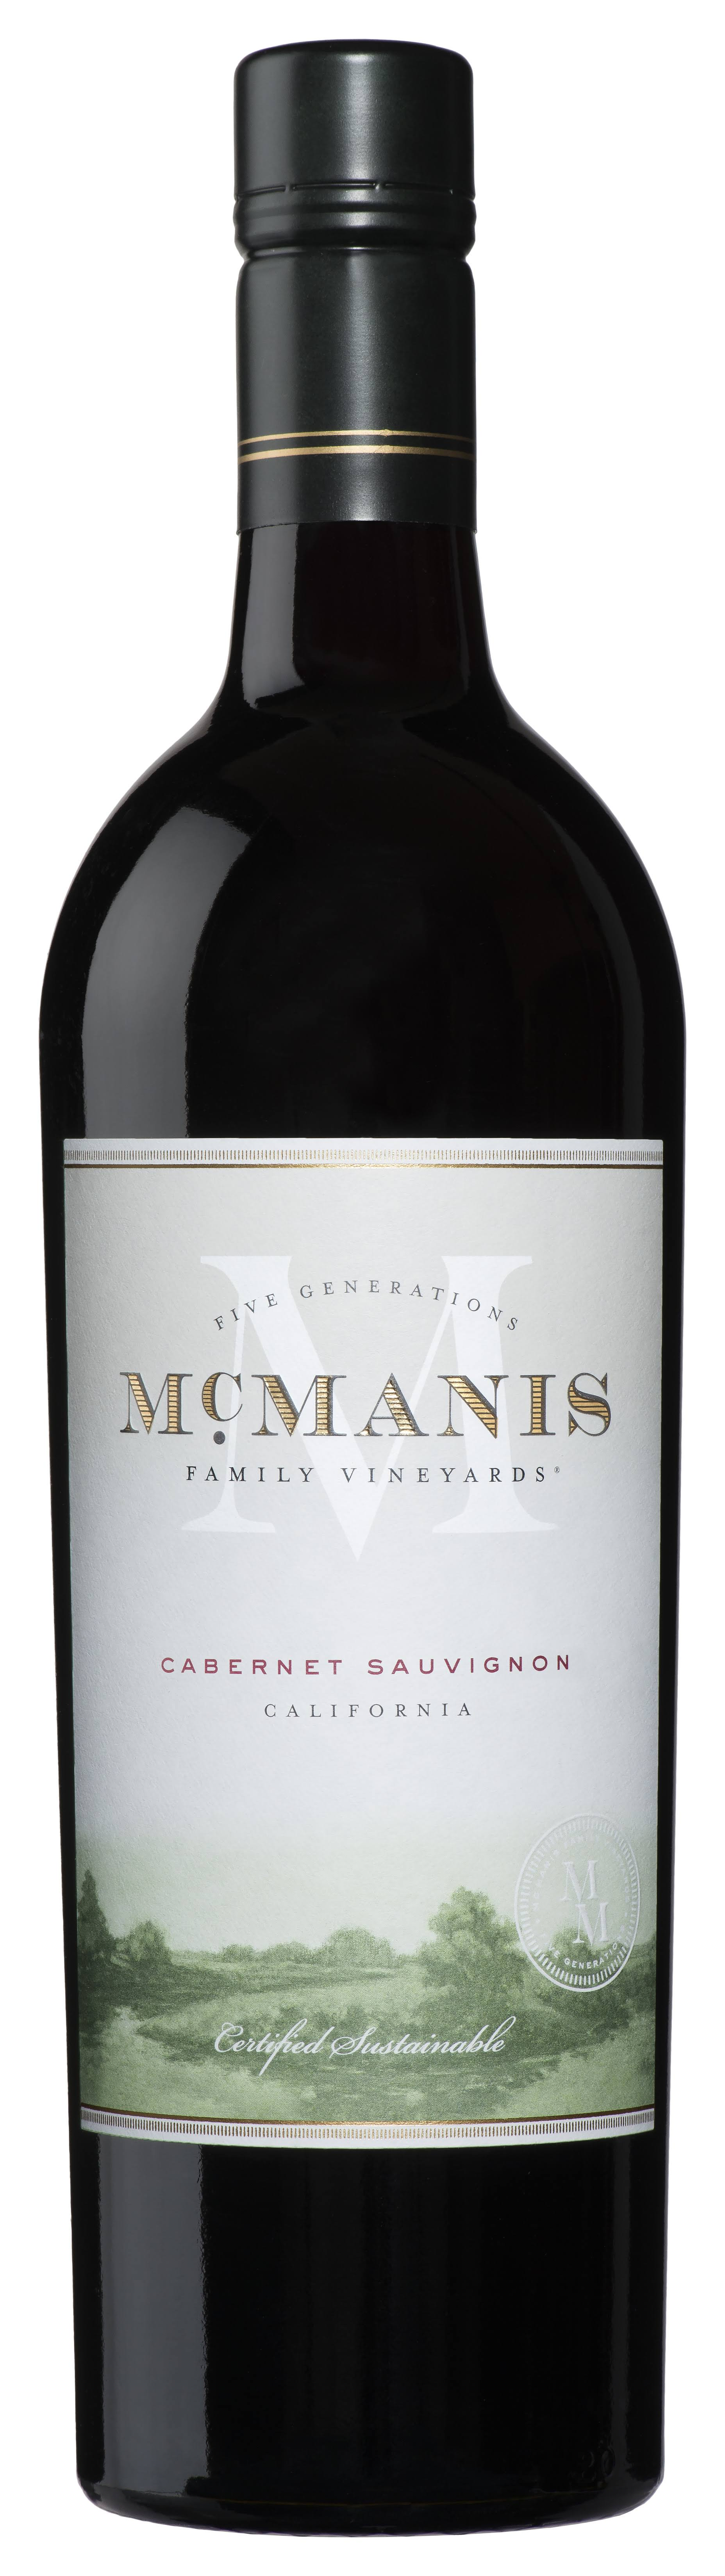 McManis Family Vineyards Cabernet Sauvignon, California, 2006 - 750 ml